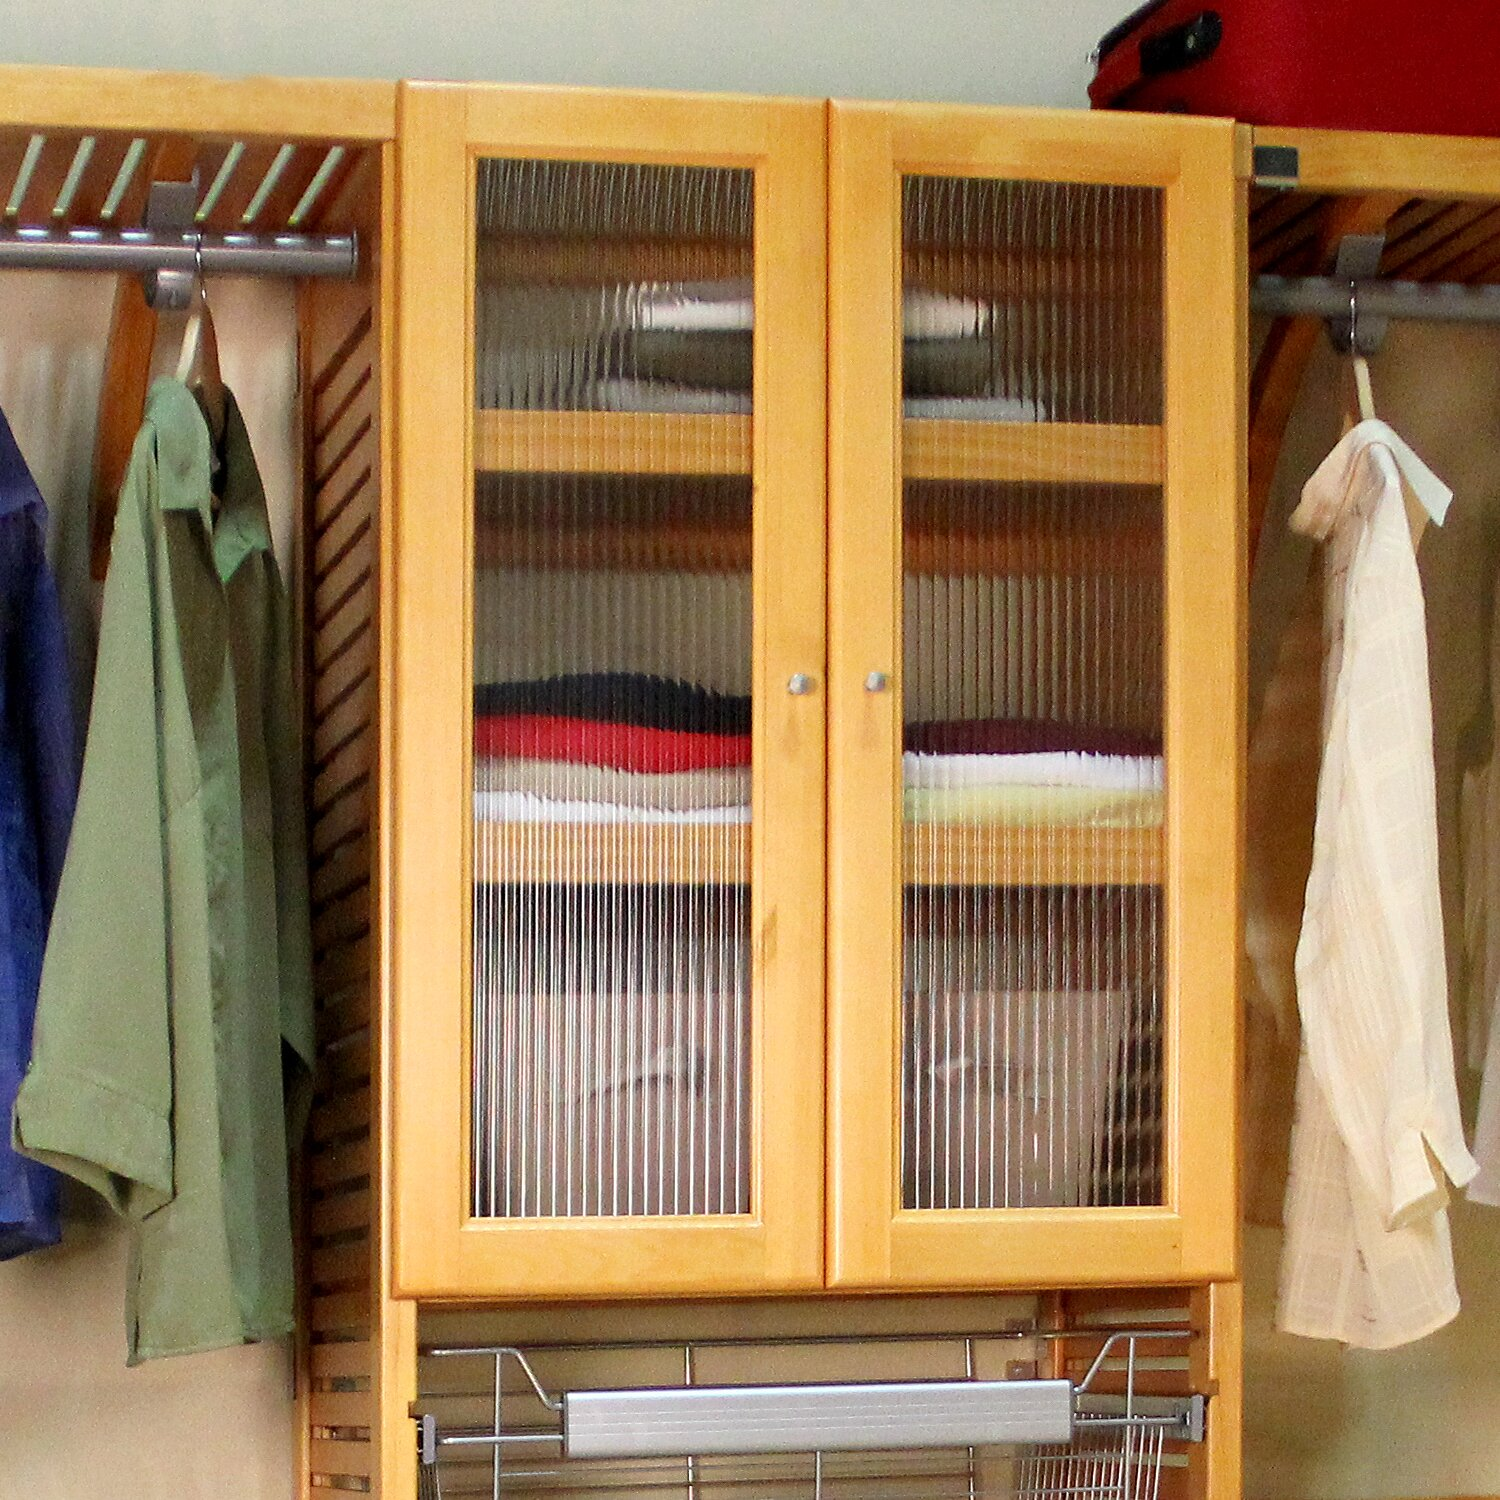 John louis home john louis home closet system doors for One day doors and closets reviews